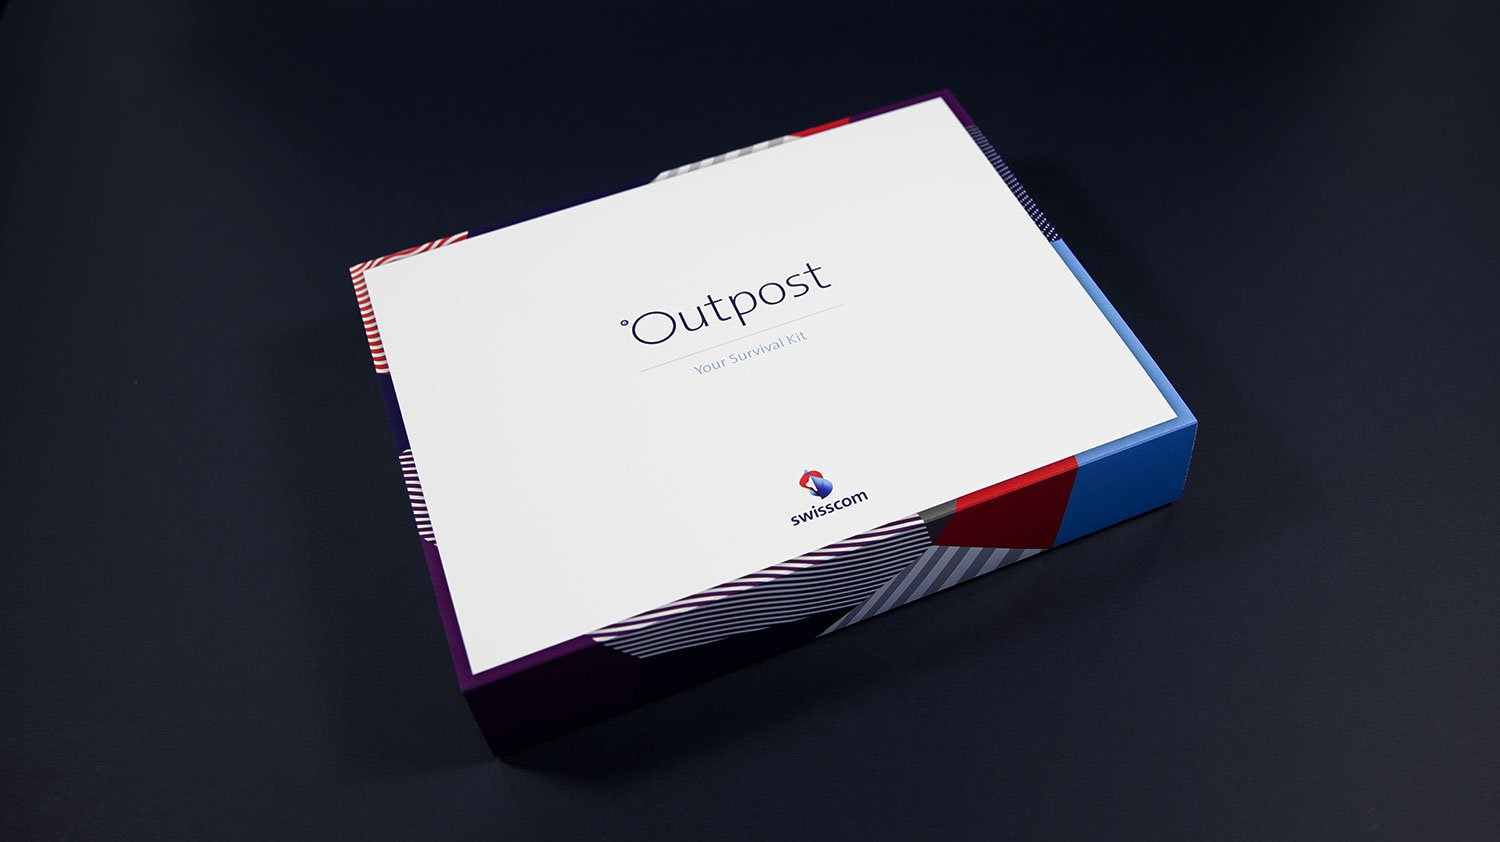 Swisscom Outpost kit